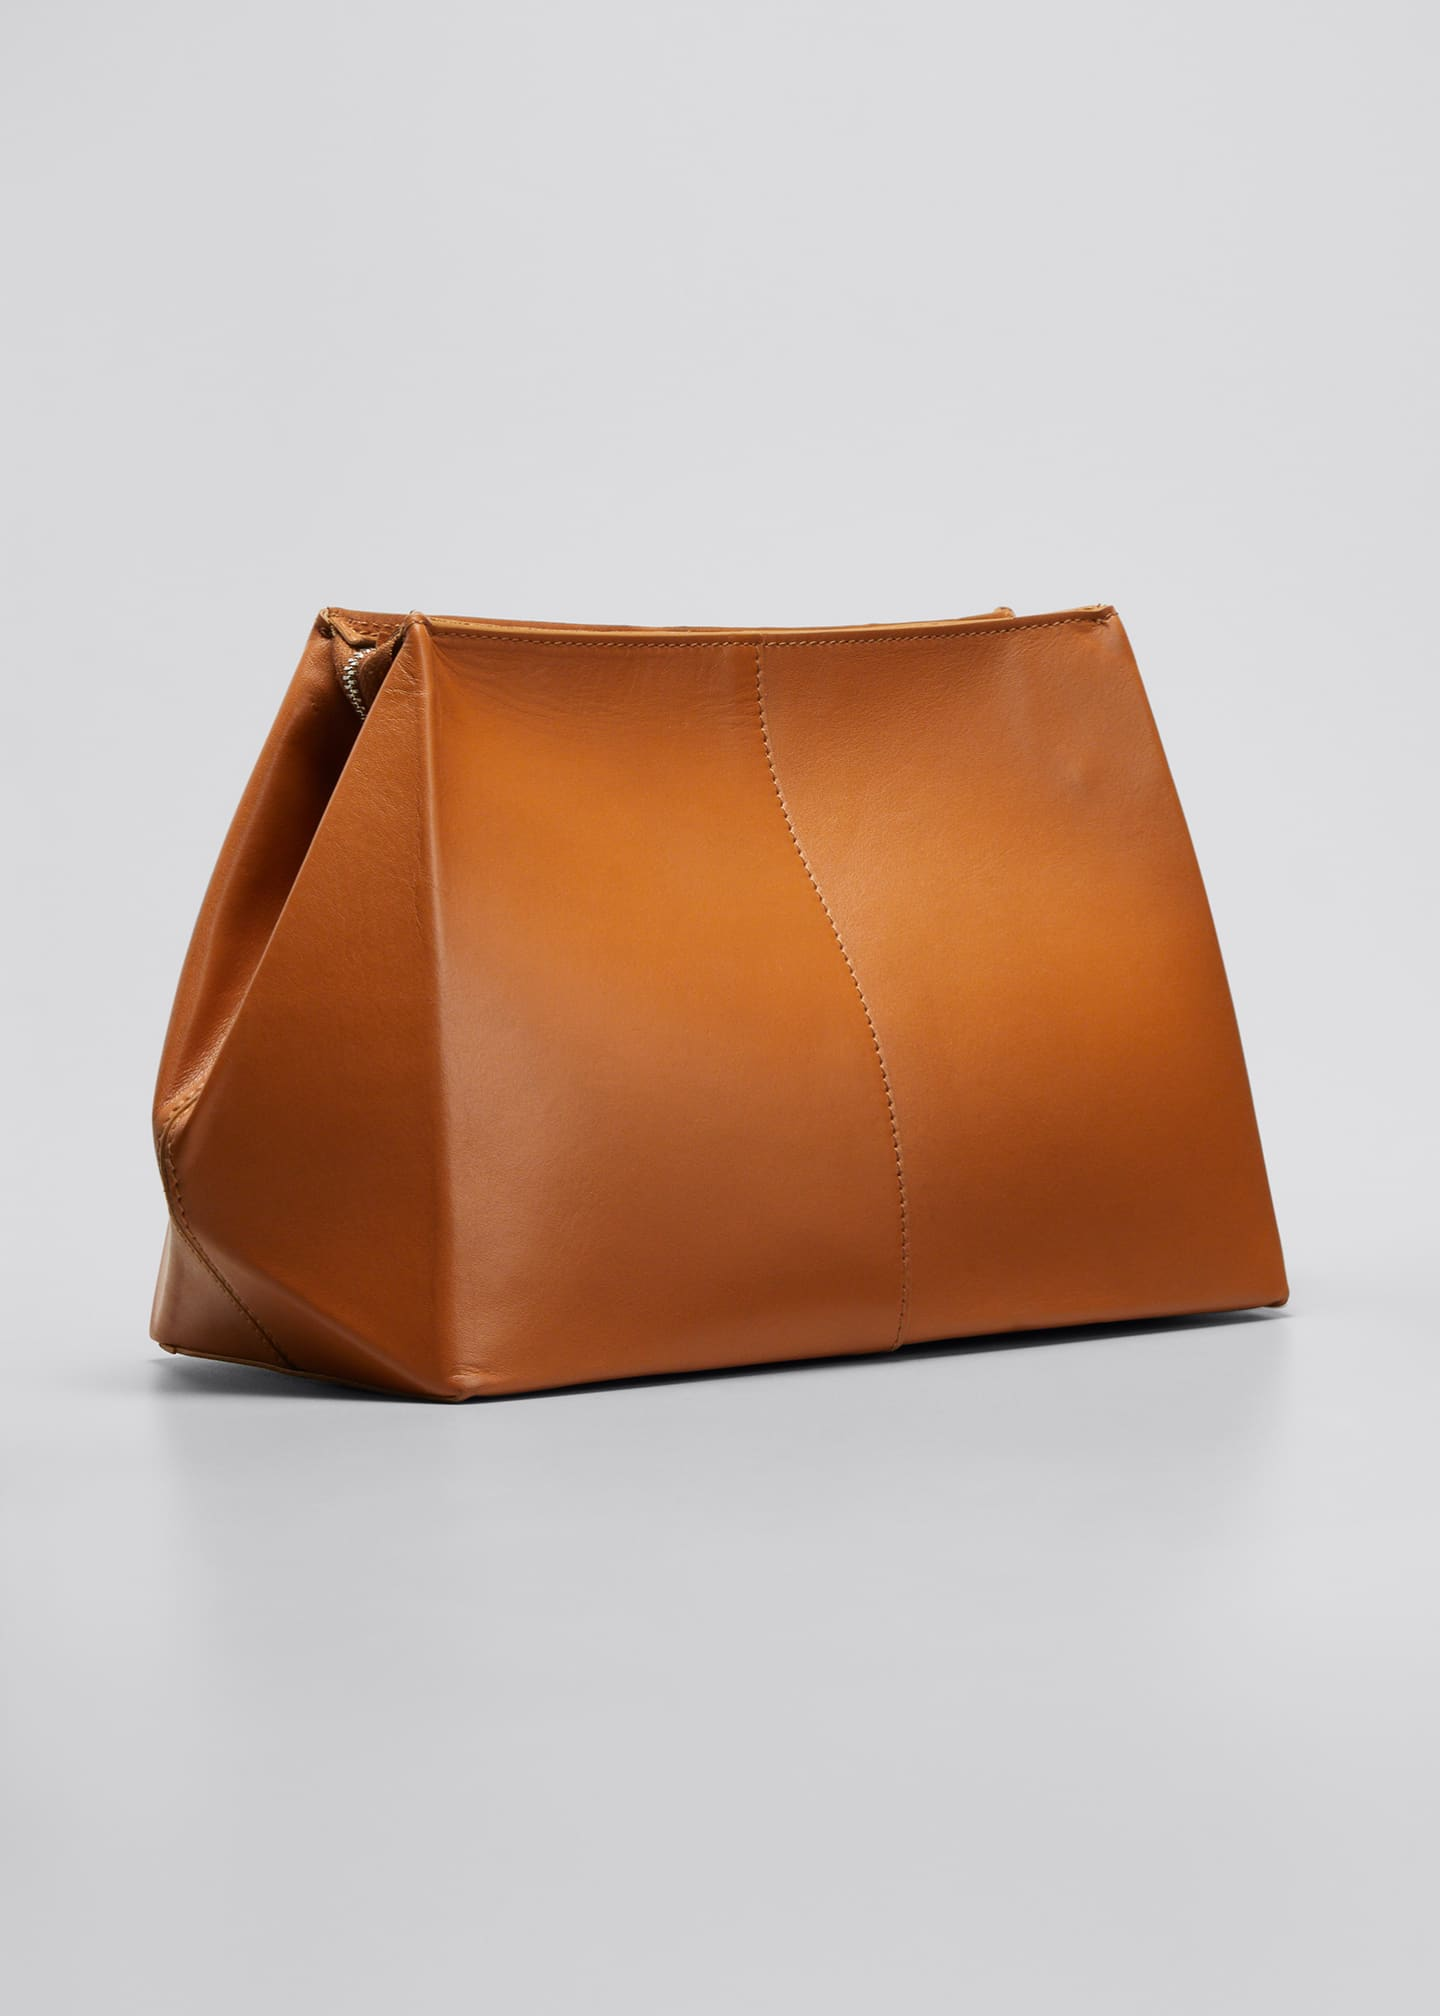 Image 3 of 5: Origami Clutch Shoulder Bag